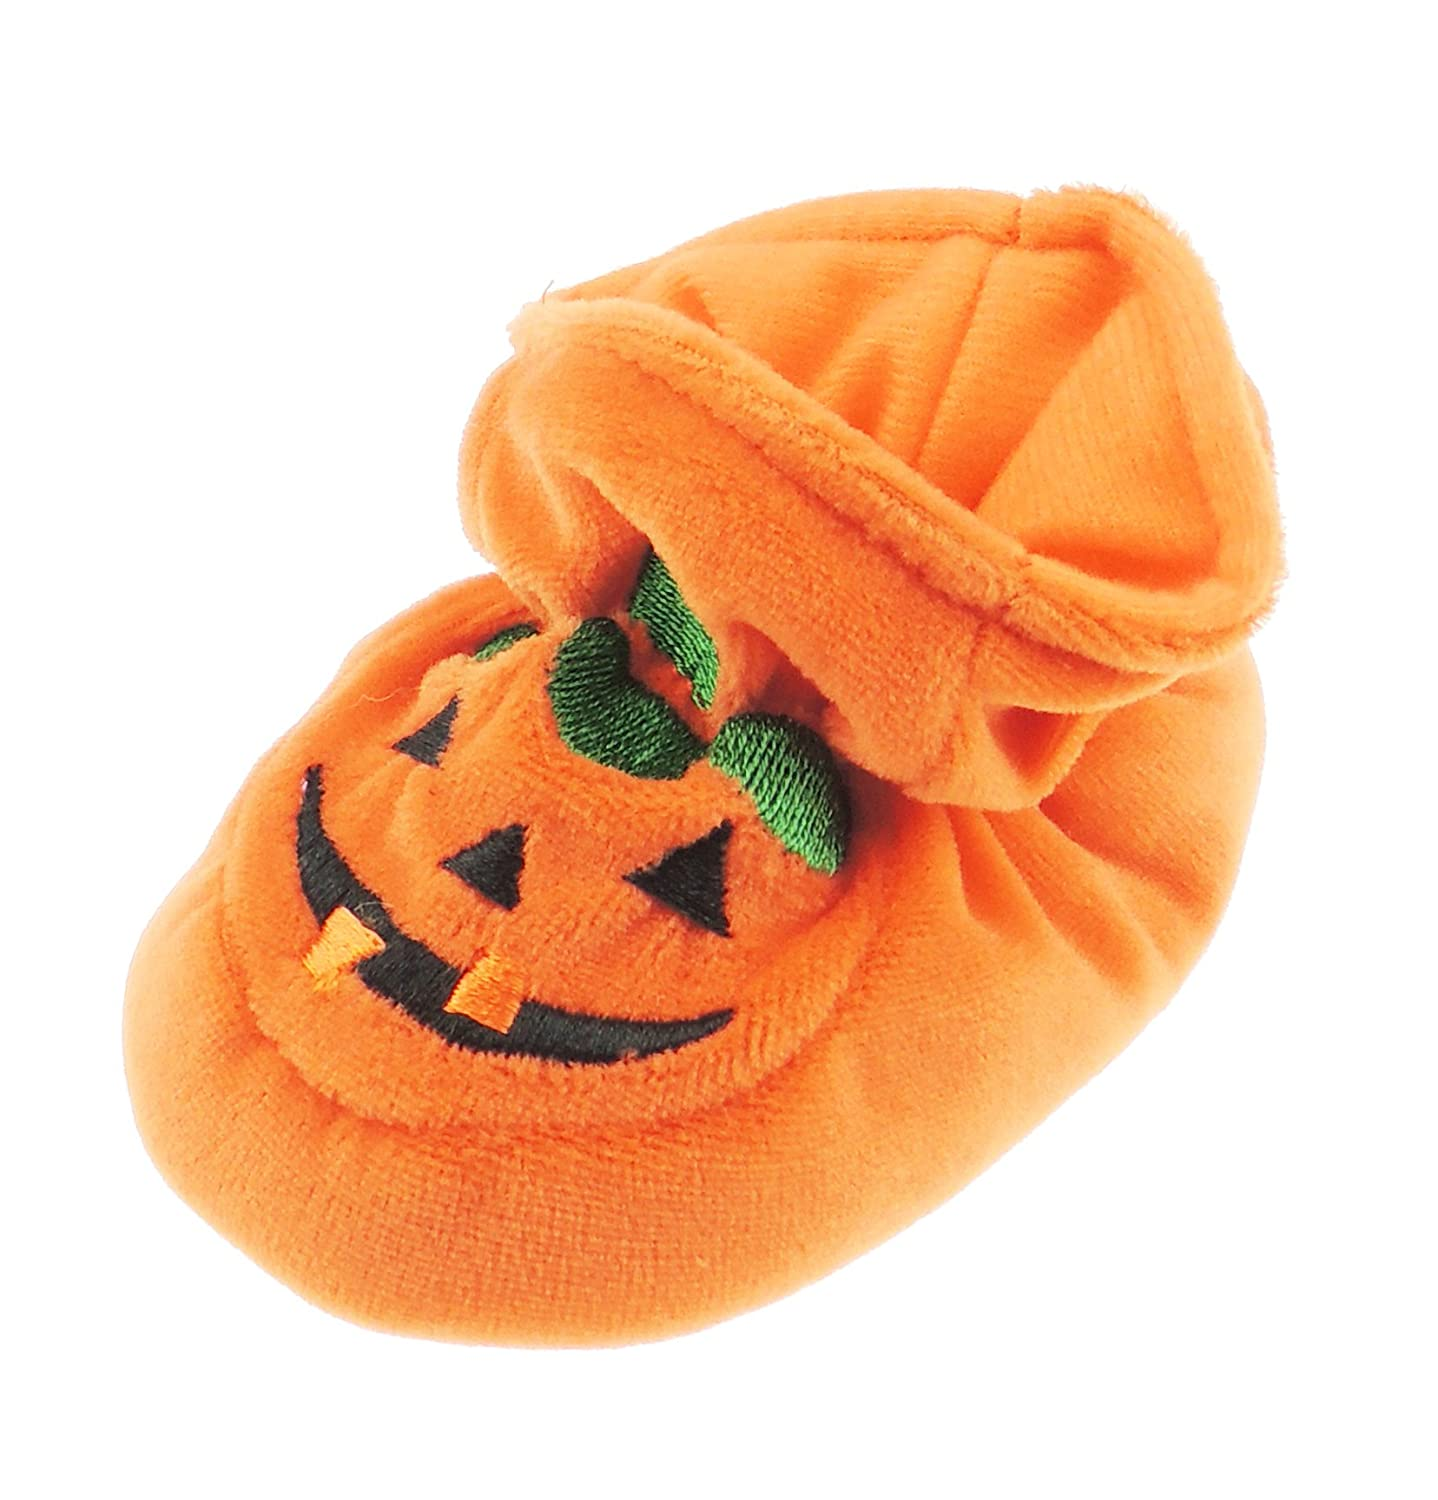 Super Cute Baby Boys Girls Pram Padders Booties Slippers Orange Halloween Thanksgiving Scary Pumpkin 13 6-12 Months Glamour Girlz